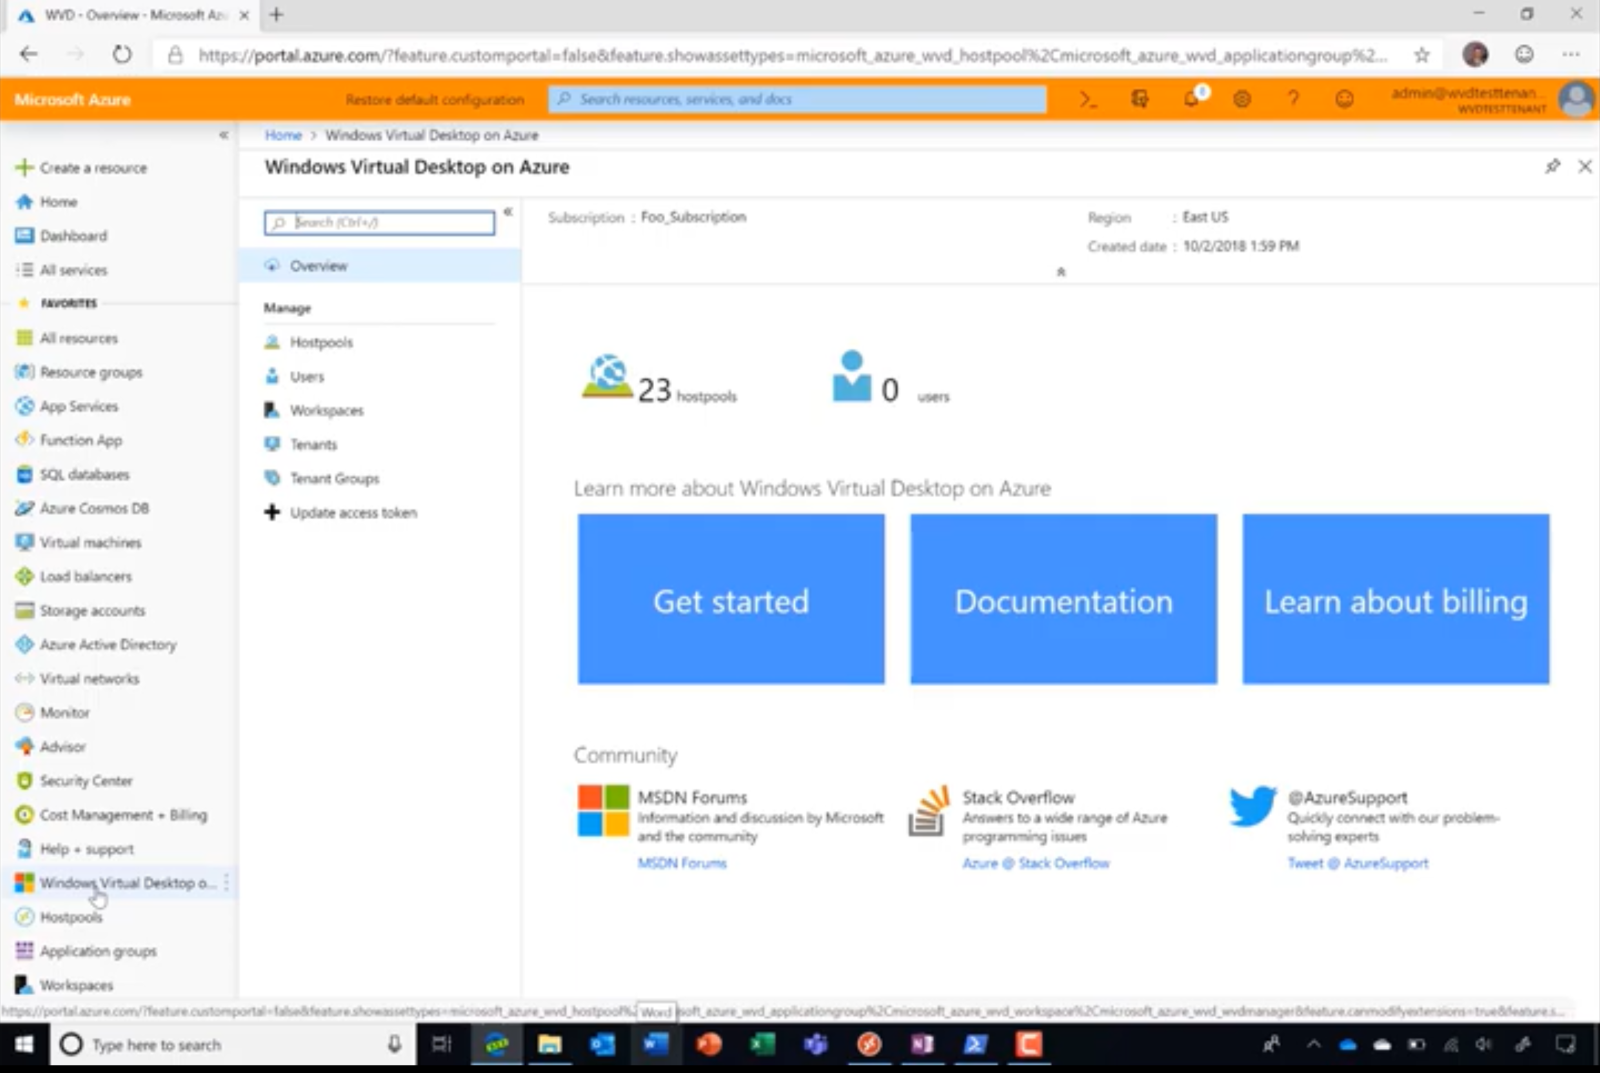 Tuesdays with Corey: Preview Portal Update to Windows Virtual Desktop offering in Azure